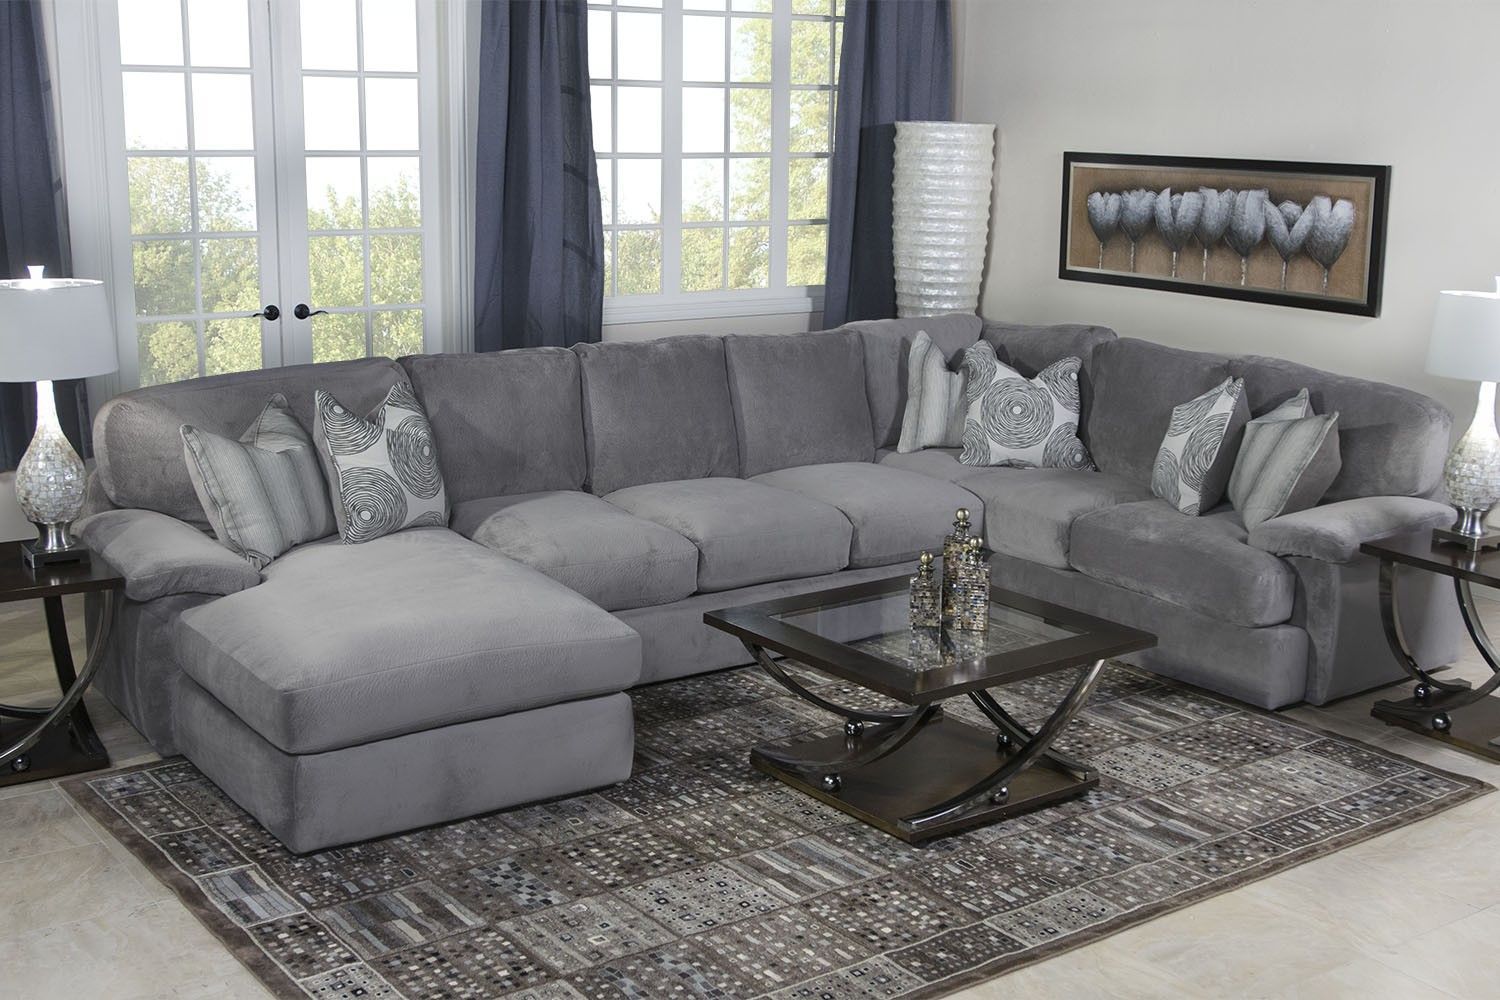 Key West Sectional Living Room in Gray Media Image 1